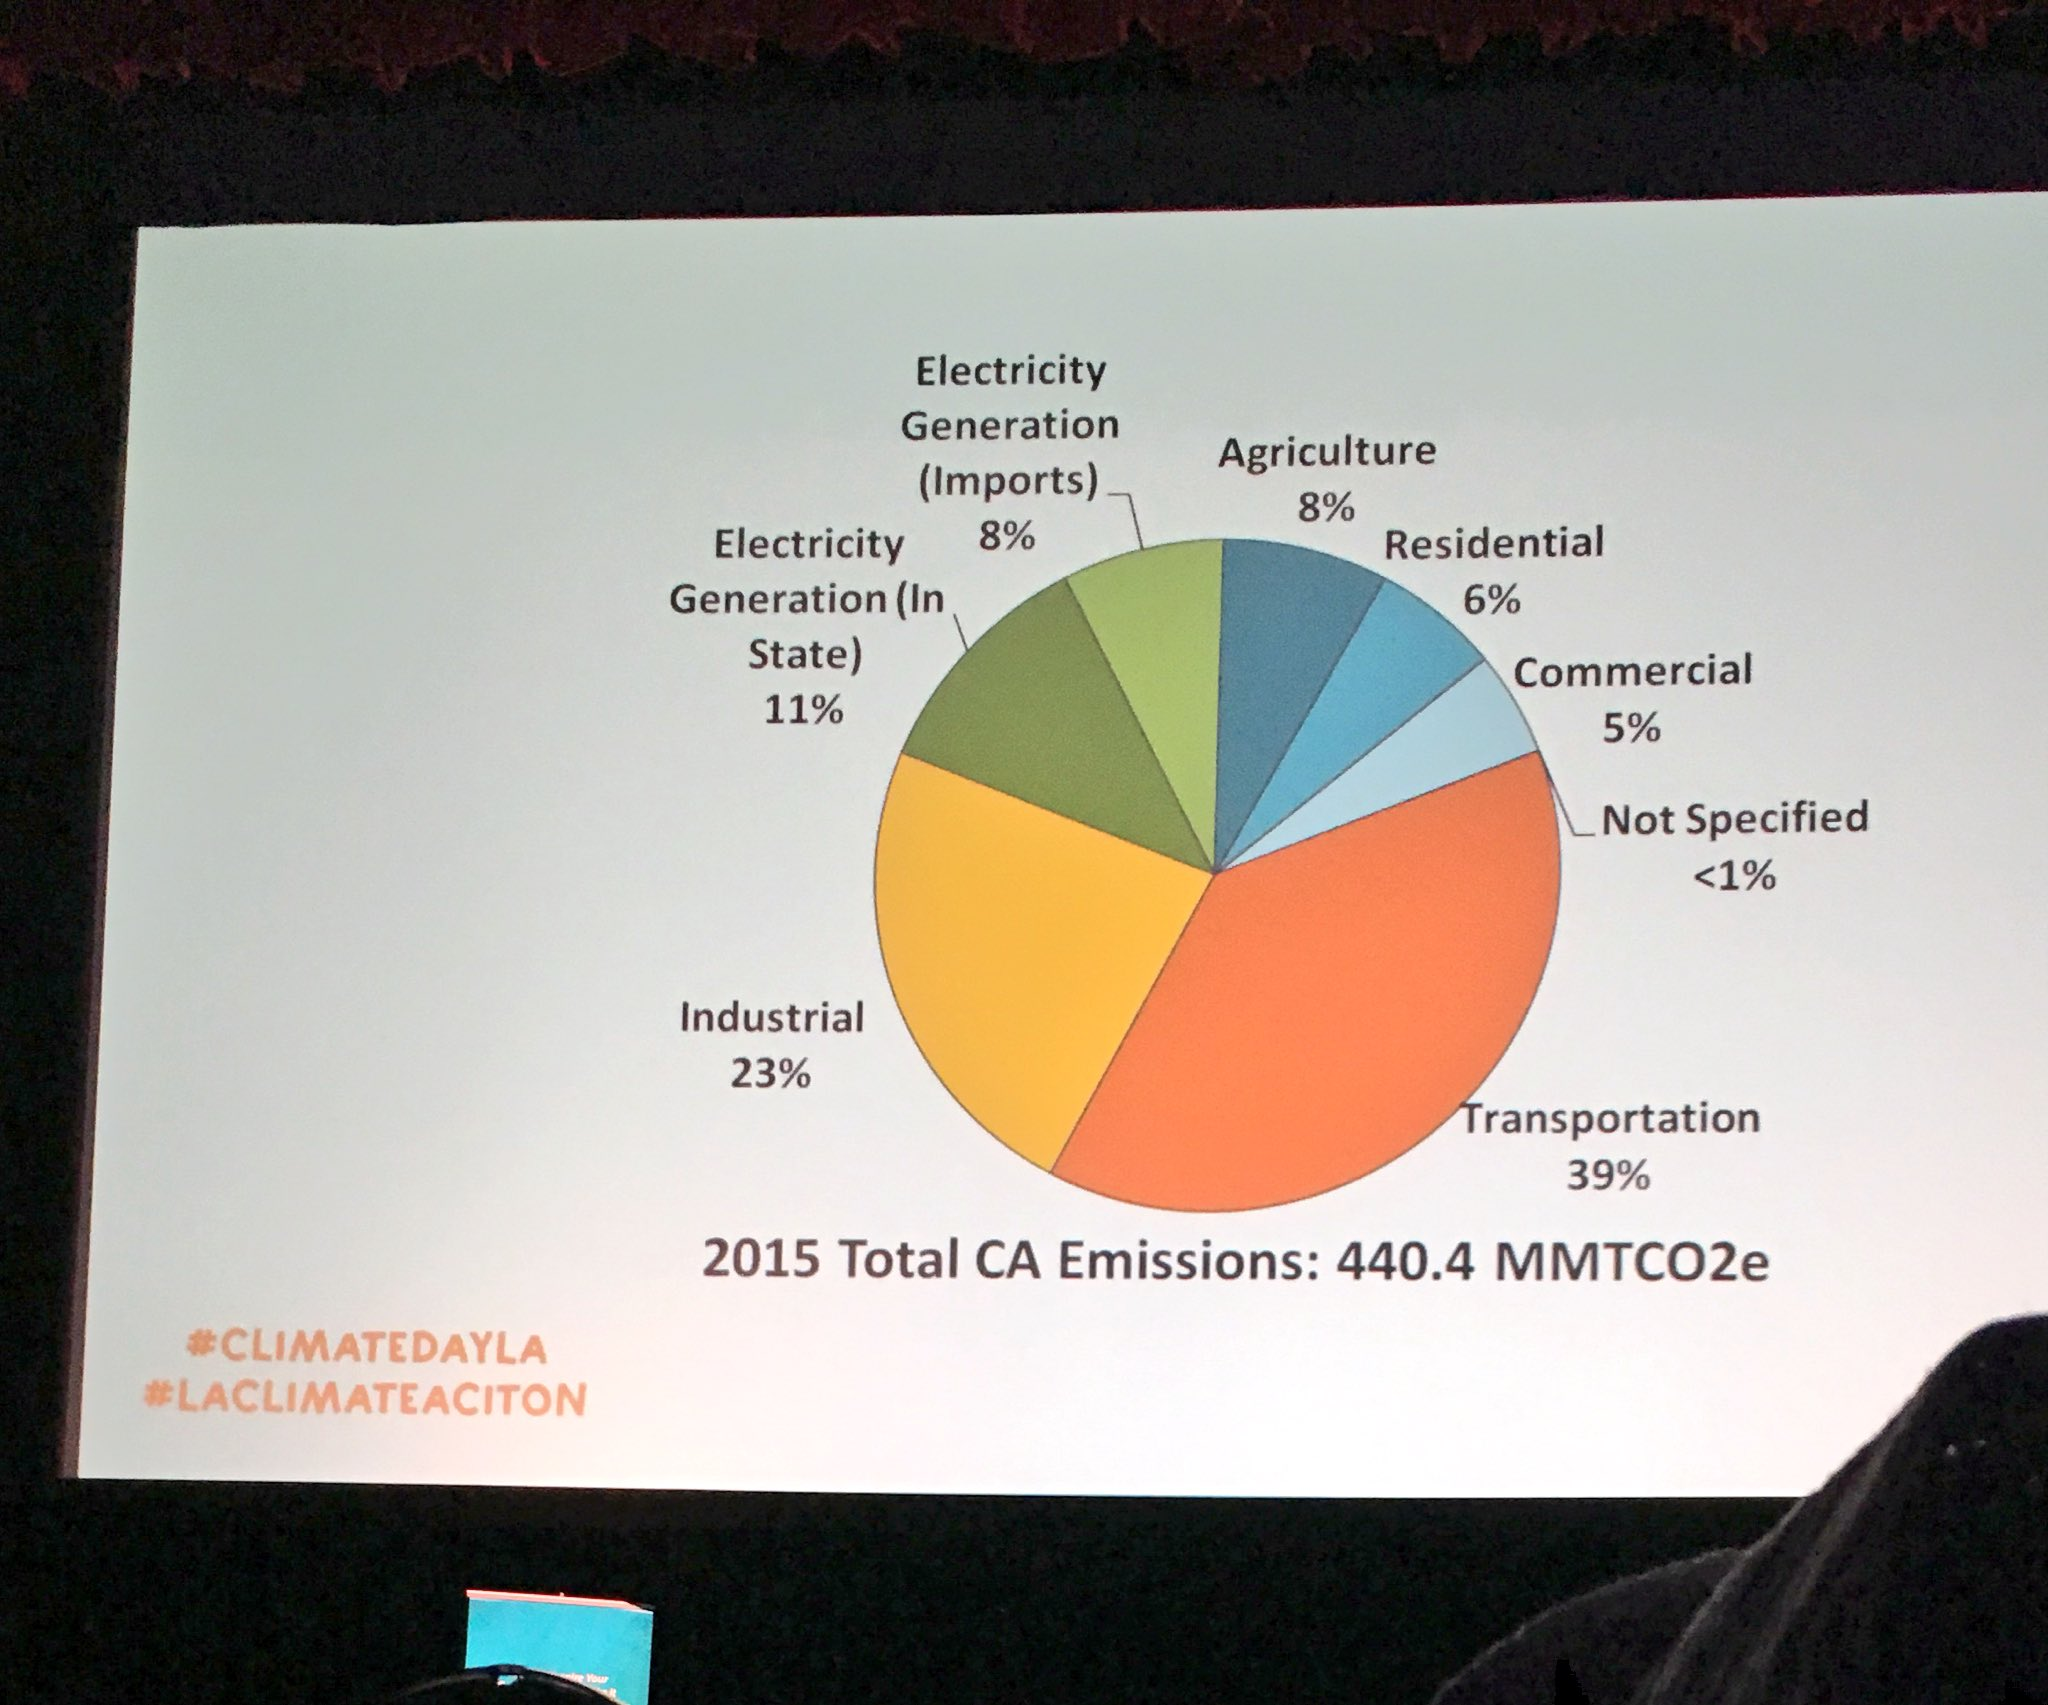 Total CA Emissions in 2015. #ClimateDayLA #KeepLACool #LAClimateAction https://t.co/TlpB1UsvdJ